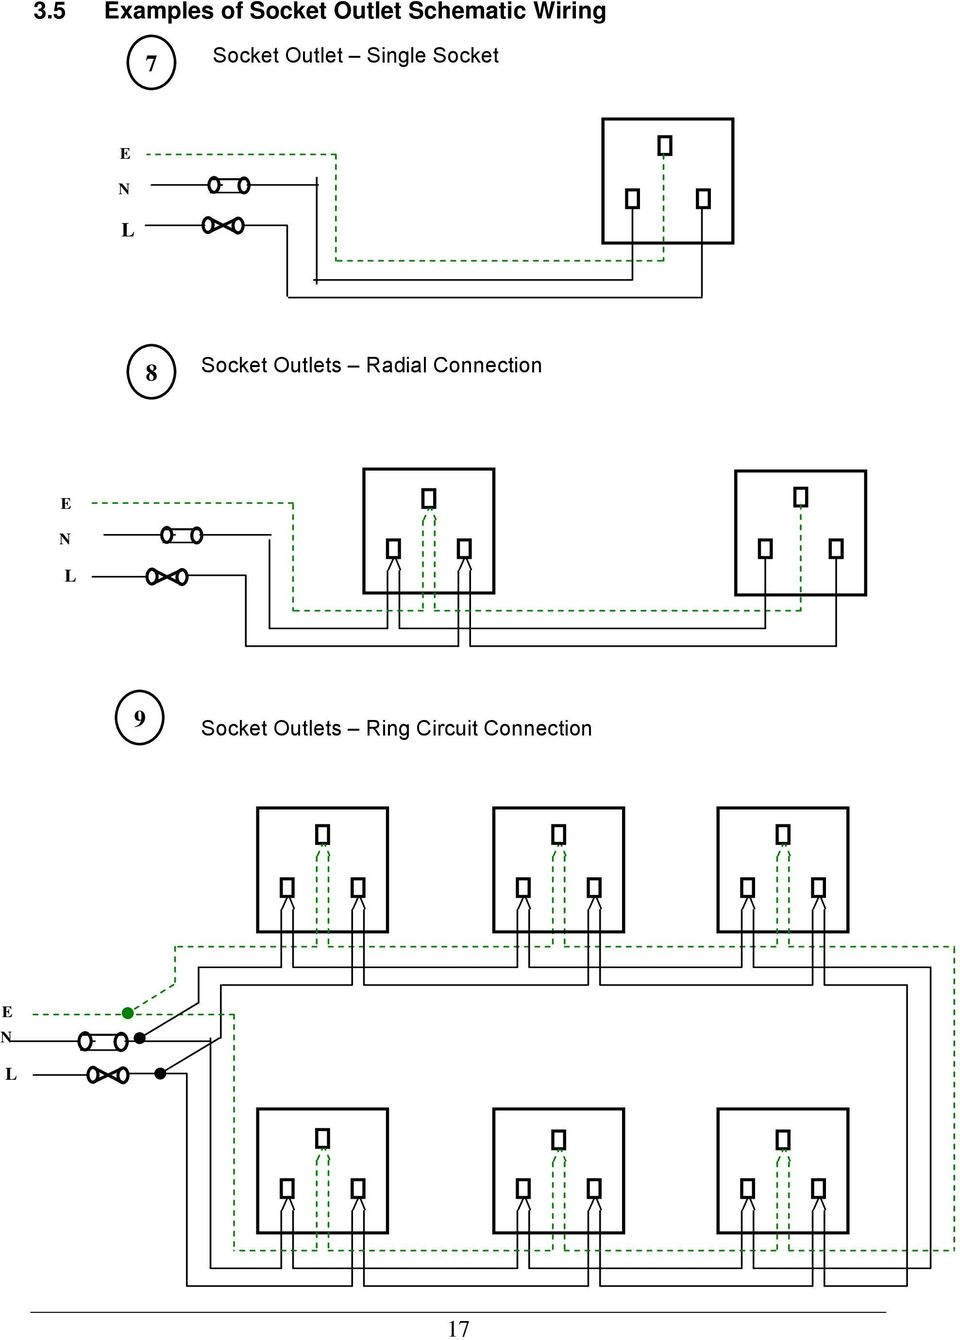 Guidelines for electrical wiring in residential buildings pdf 8 socket outlets radial connection e n l 9 greentooth Images